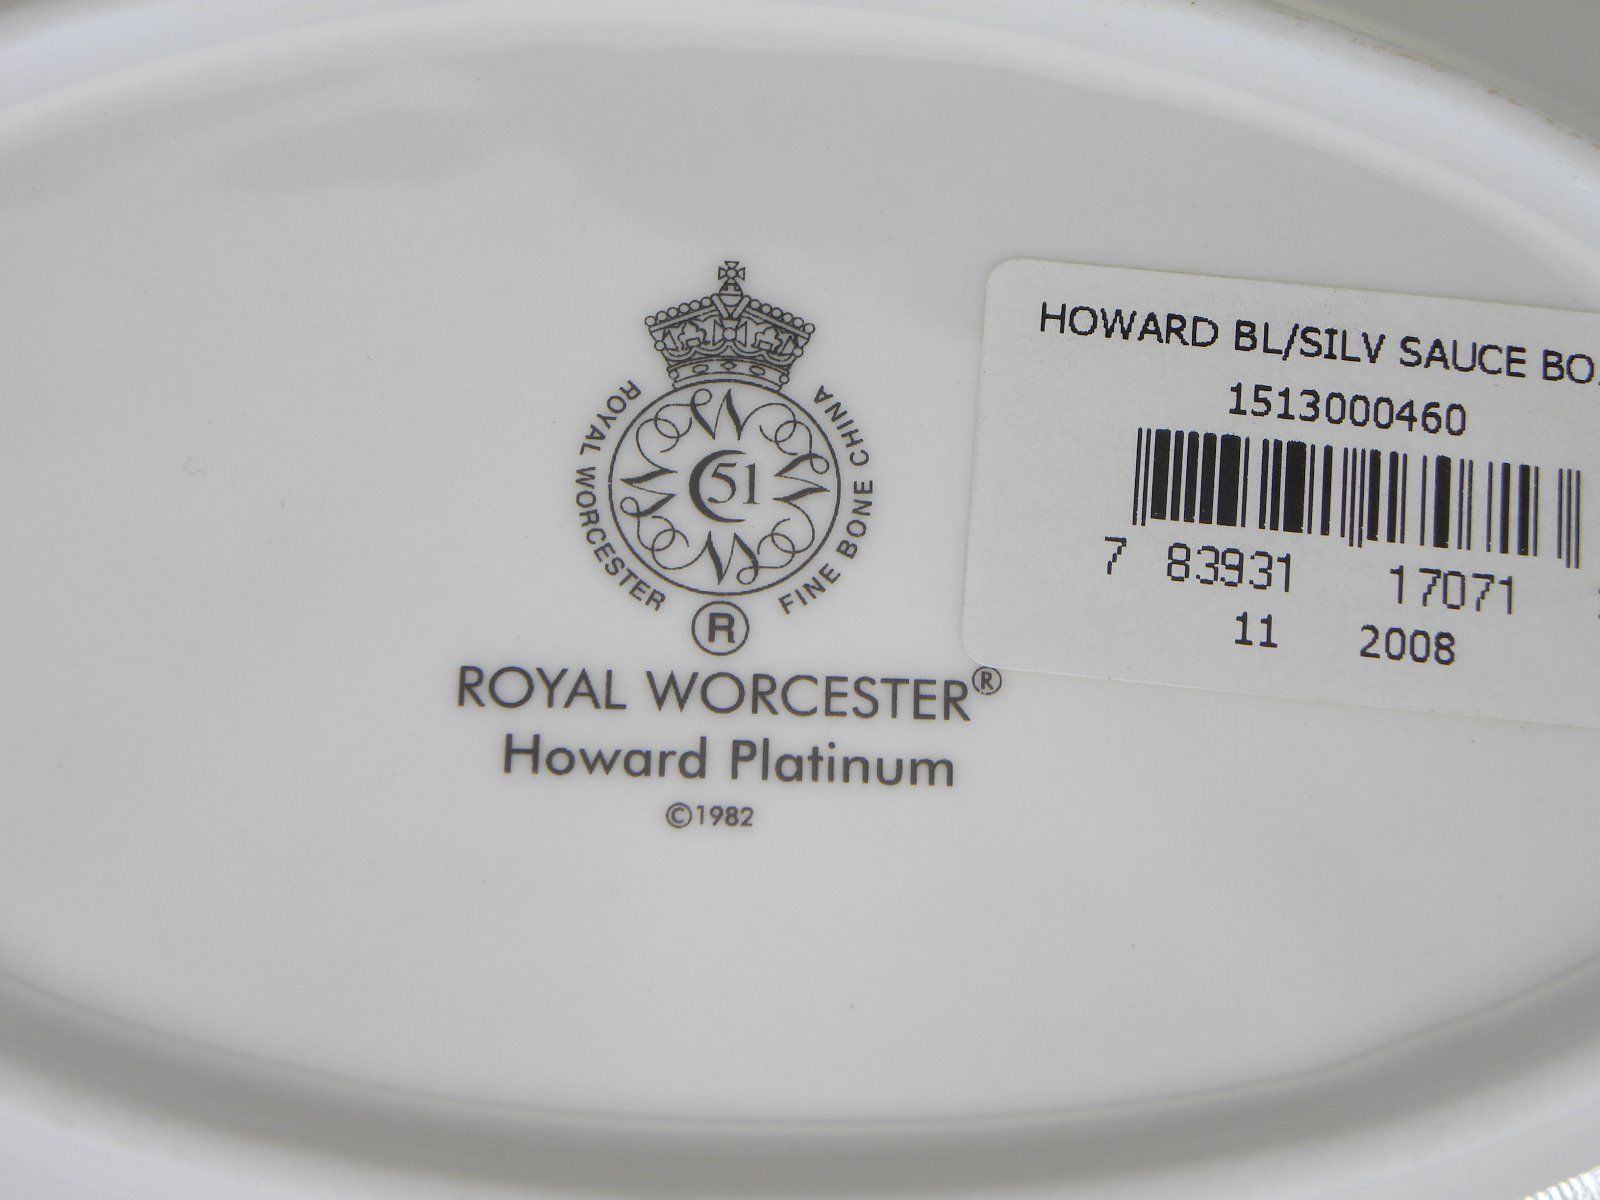 Royal Worcester Howard Platinum Sauce Boat Stand NEVER USED